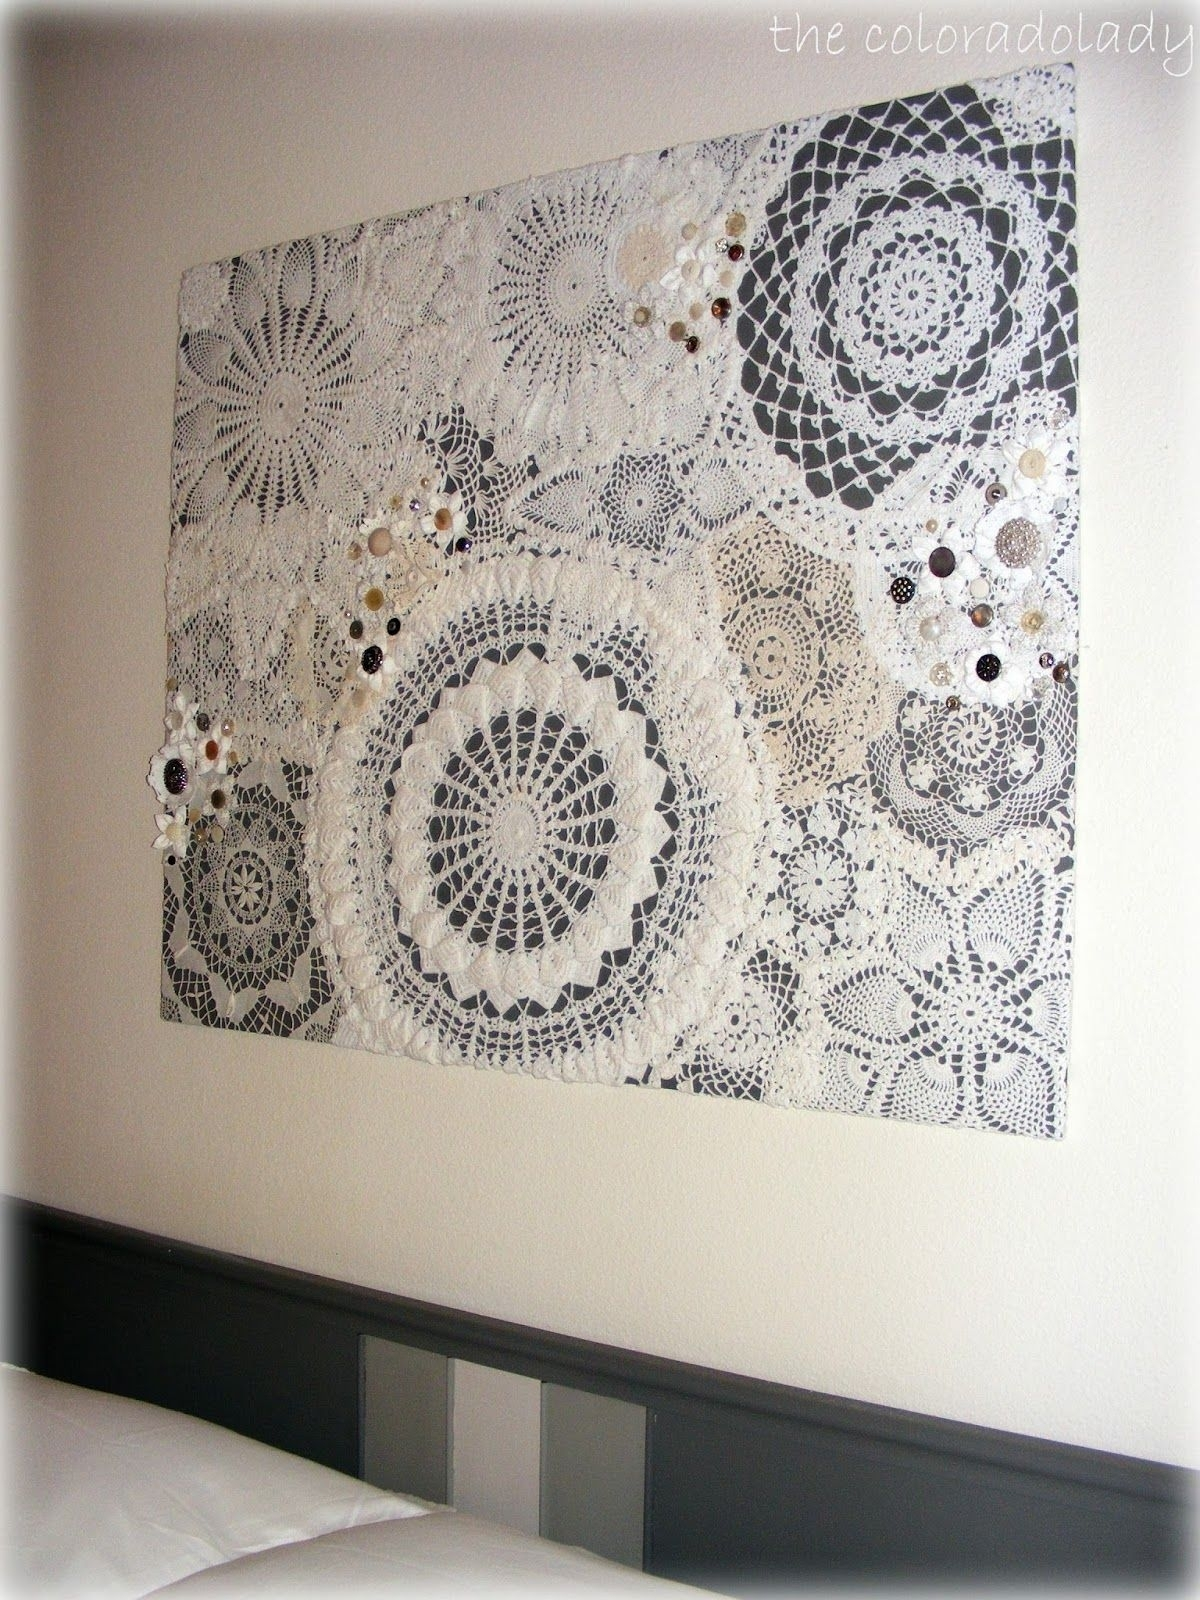 Diy Doily Craft Ideas | Walls, Doilies Crafts And Vintage Inside Most Up To Date Fabric Wall Art Patterns (View 2 of 15)